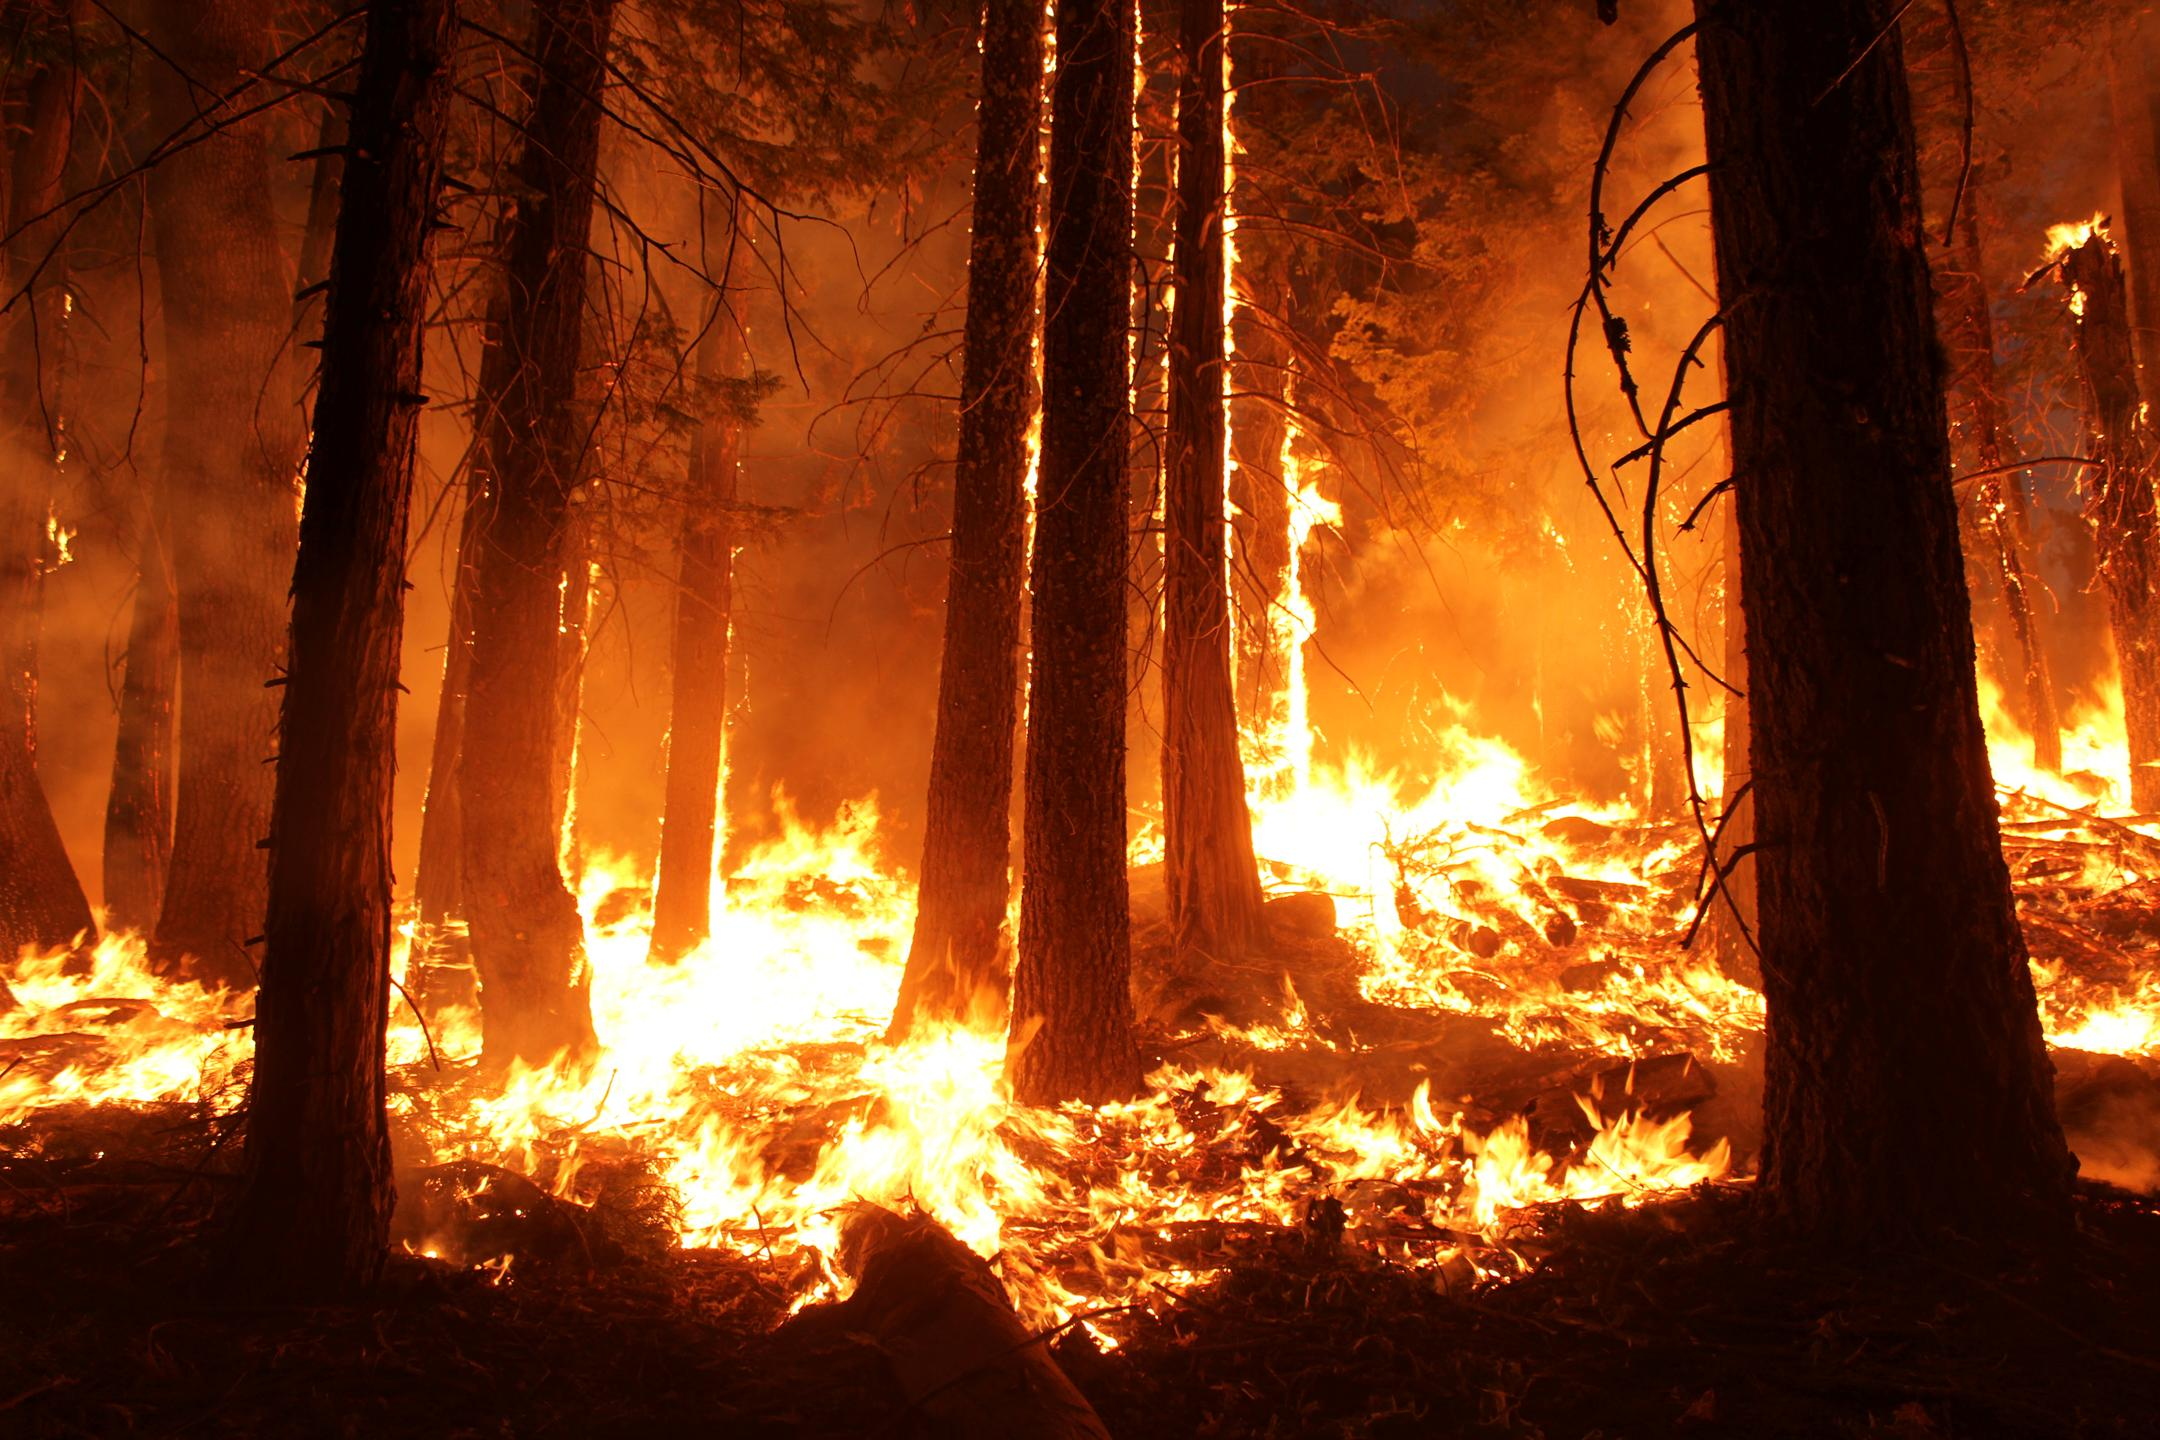 Fire woods wallpapers high quality download free fire woods wallpapers voltagebd Gallery